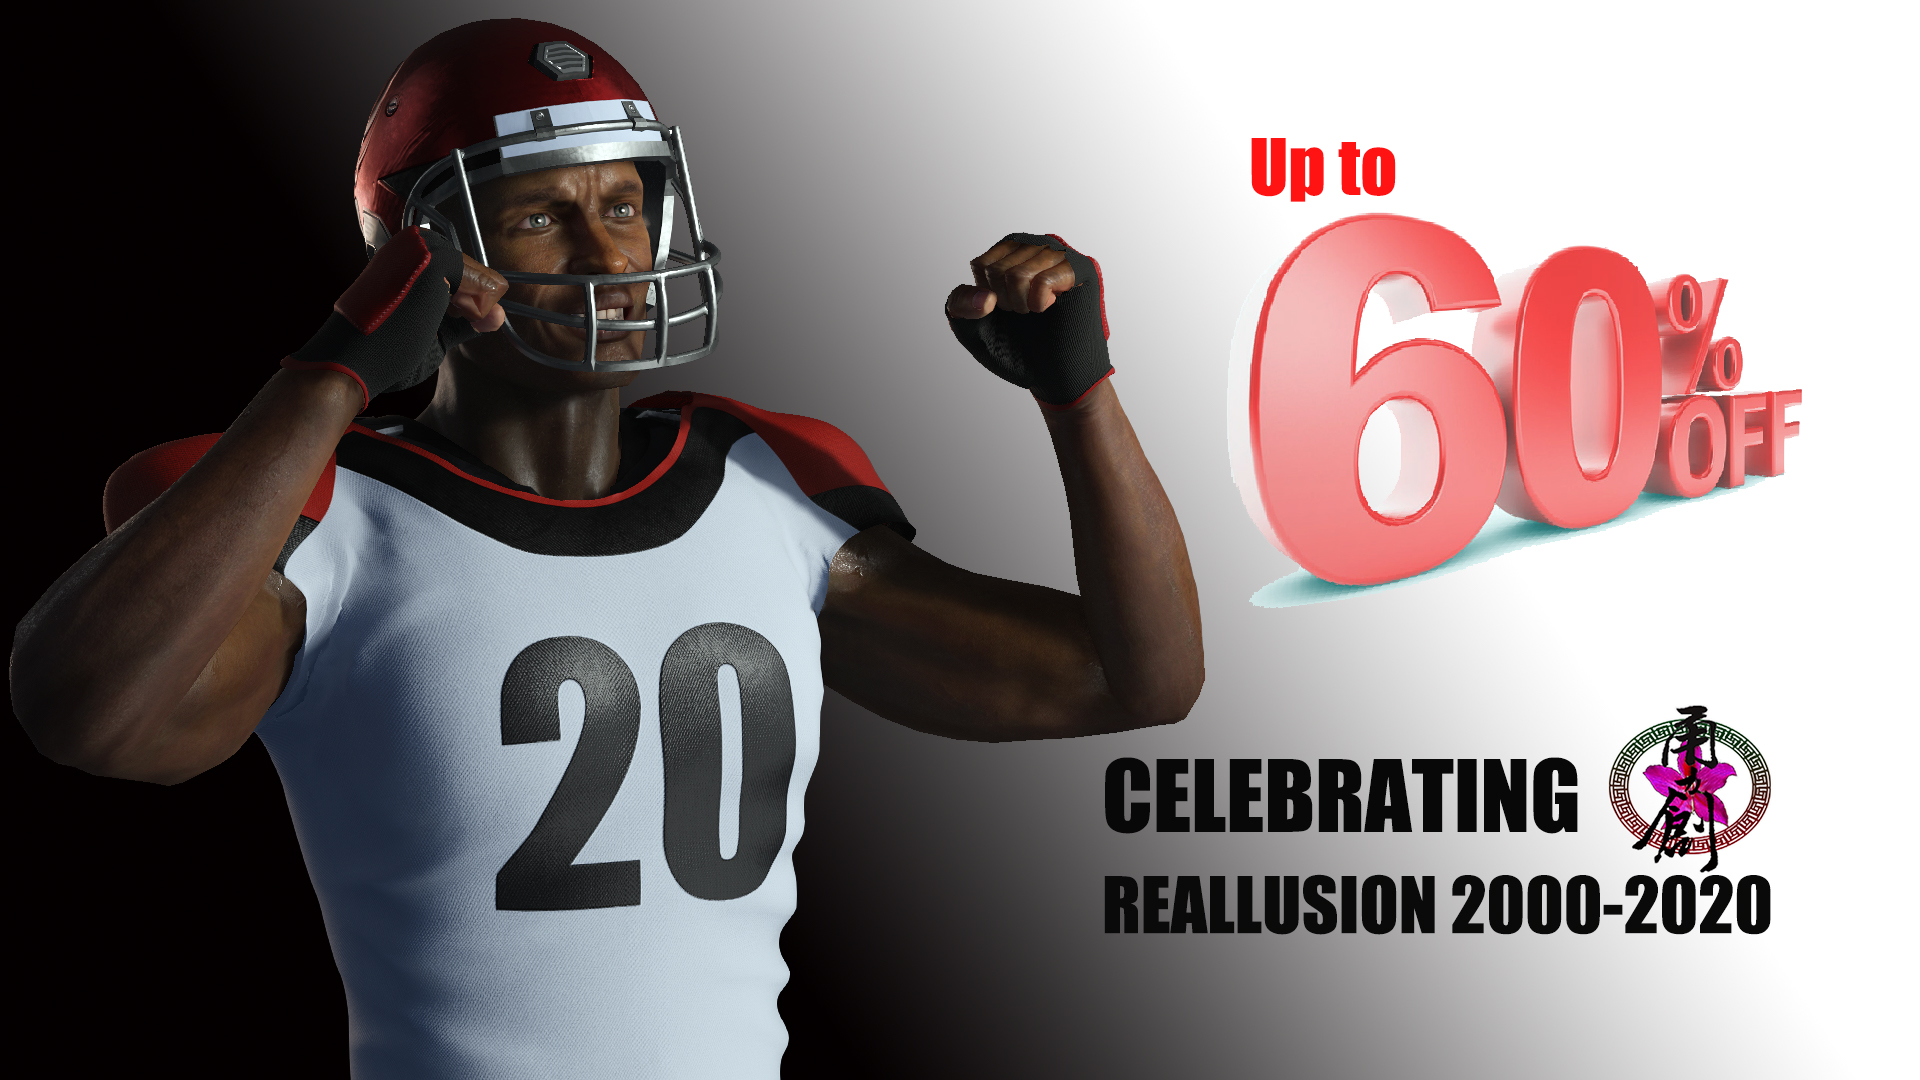 60OFF for 20 Reallusion Anniversary